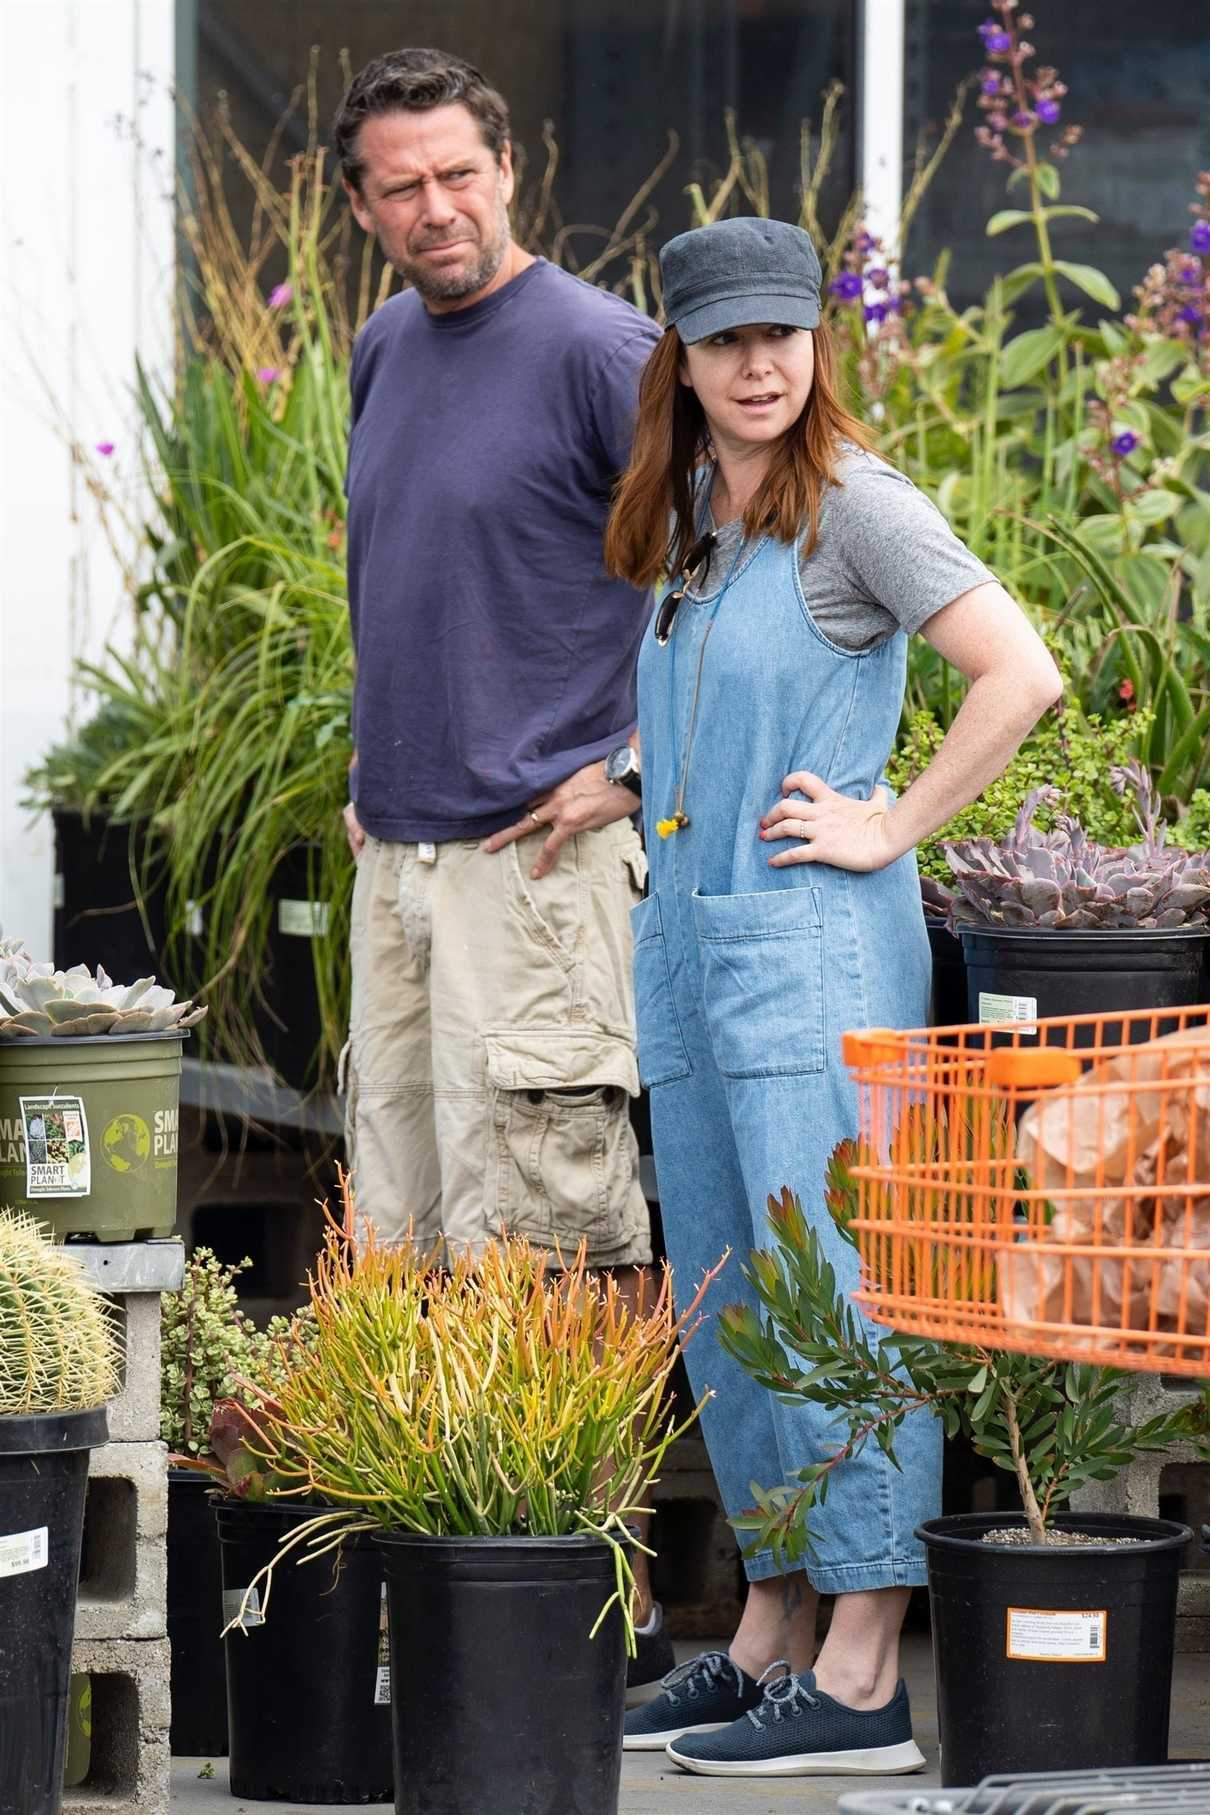 Alyson Hannigan in a Blue Overalls Does Some Flower Shopping at Home Depot in Los Angeles 09/02/2018